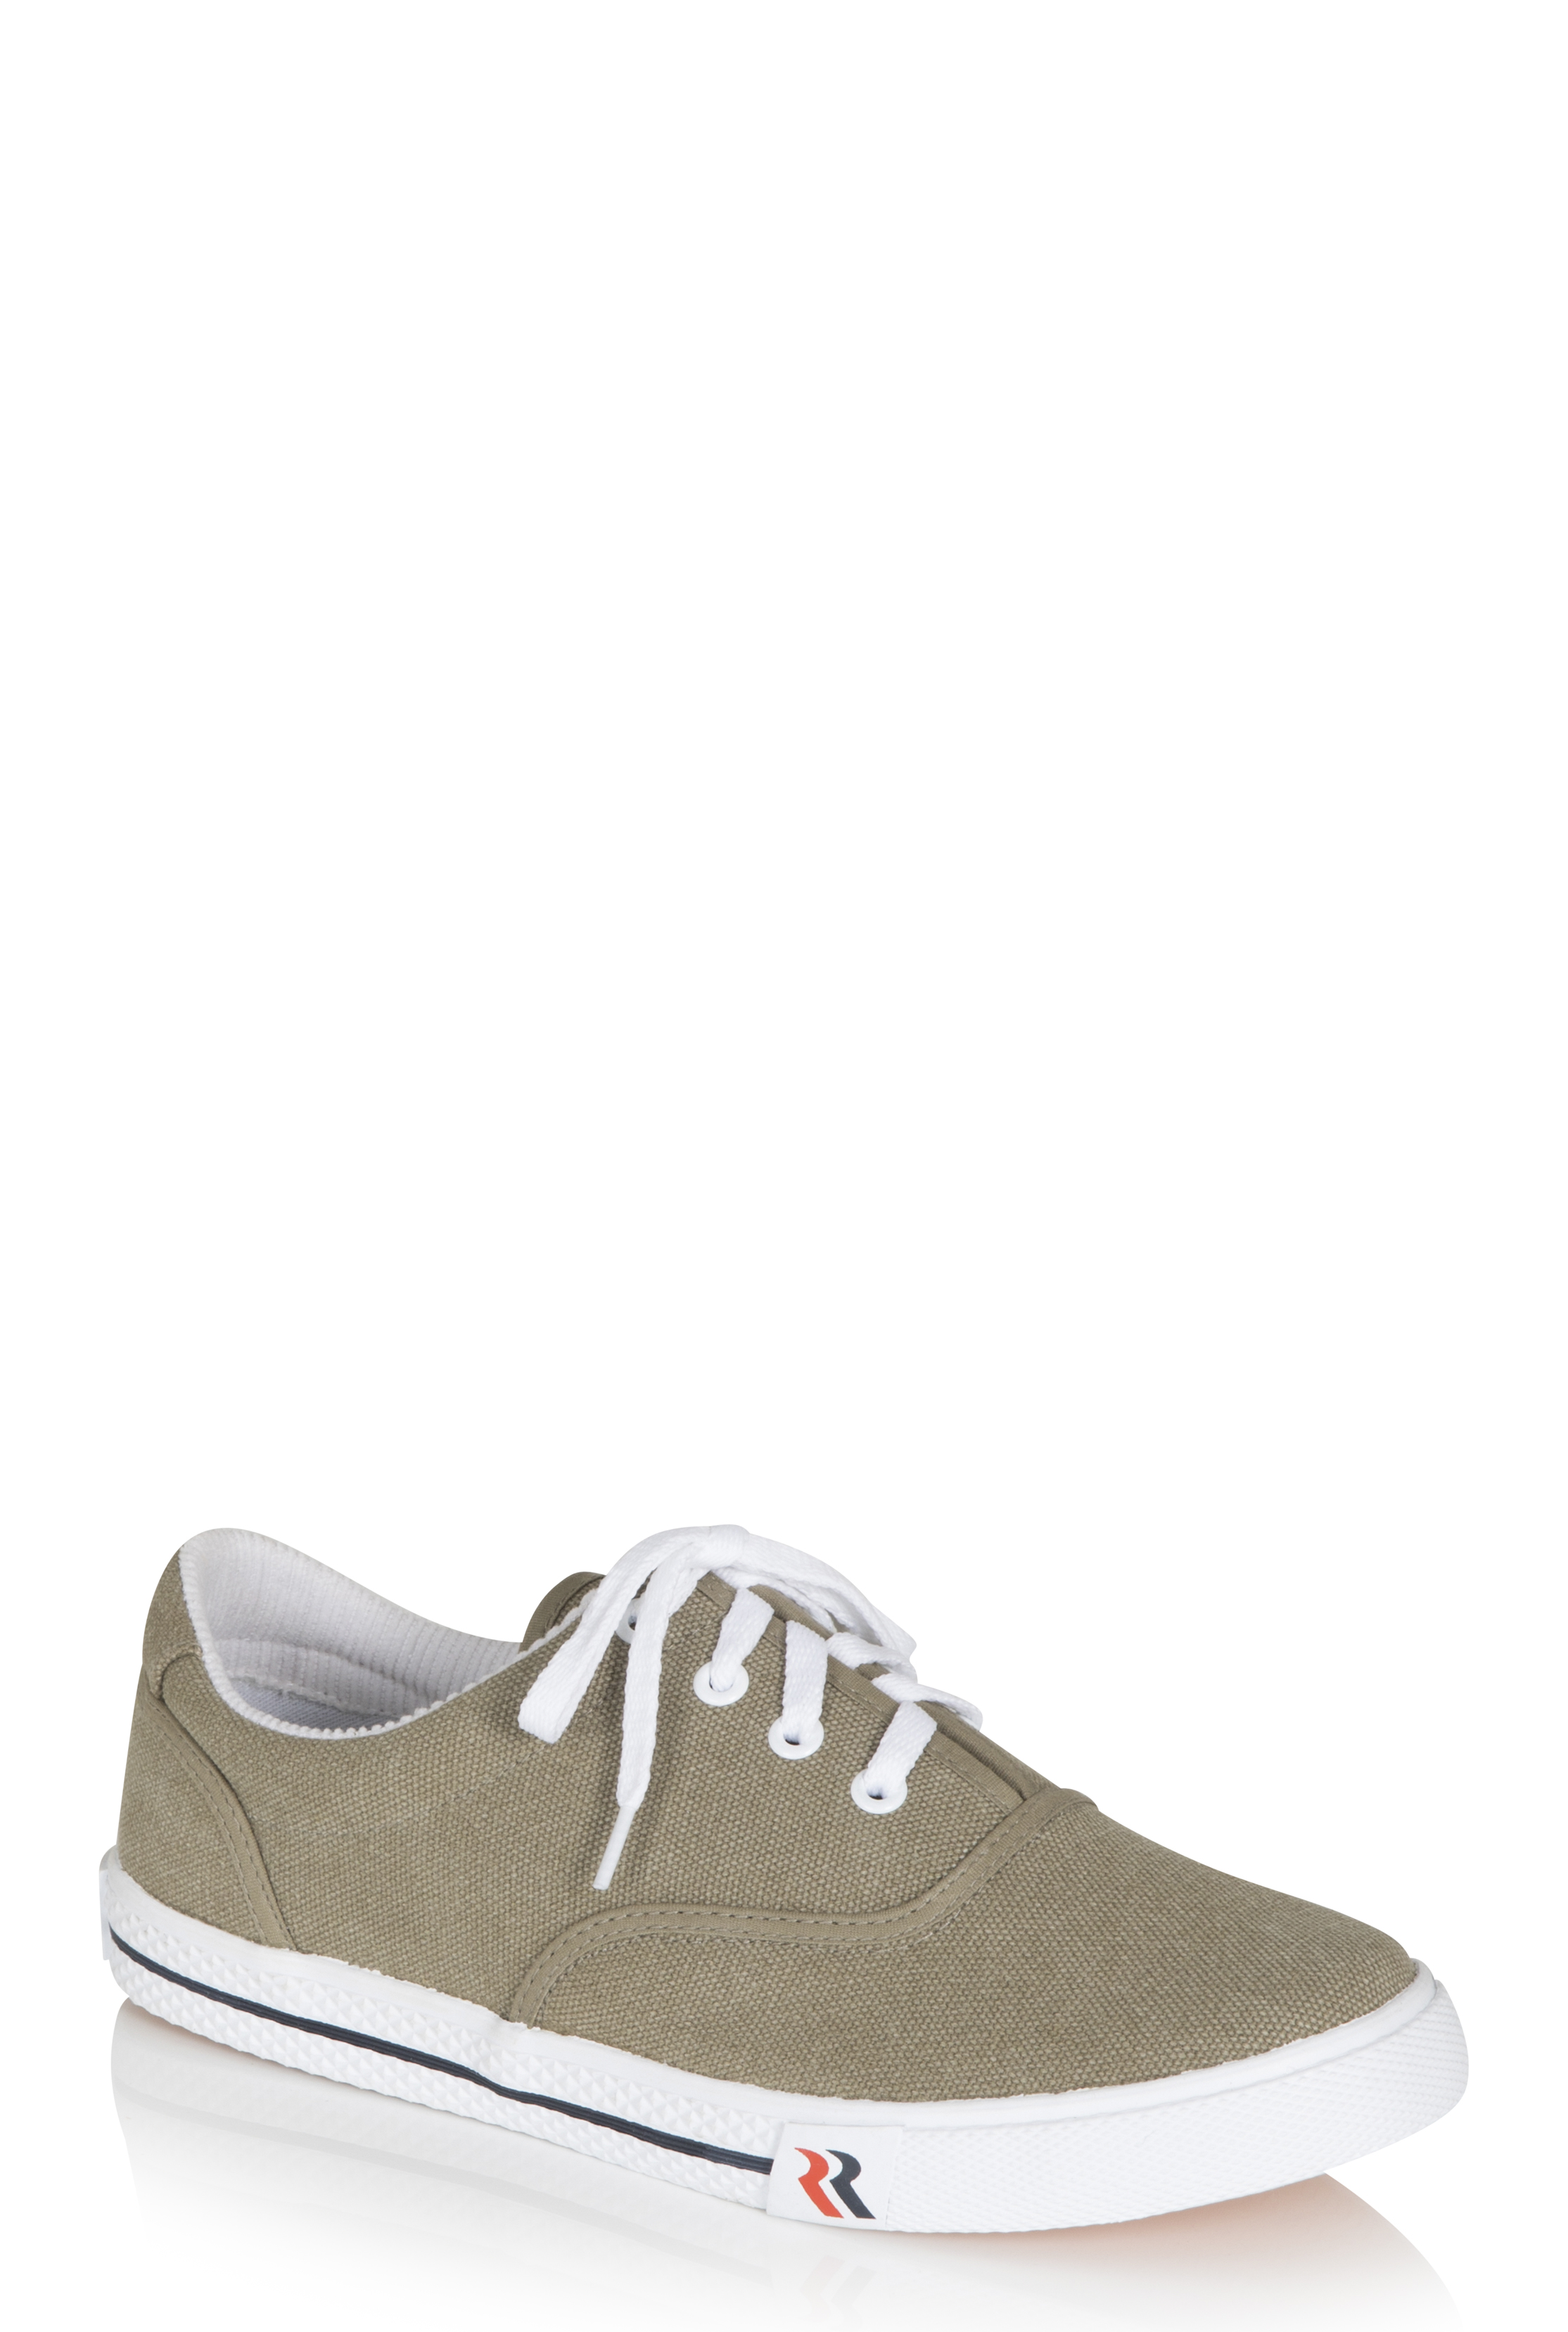 Romika Soling Lace Up